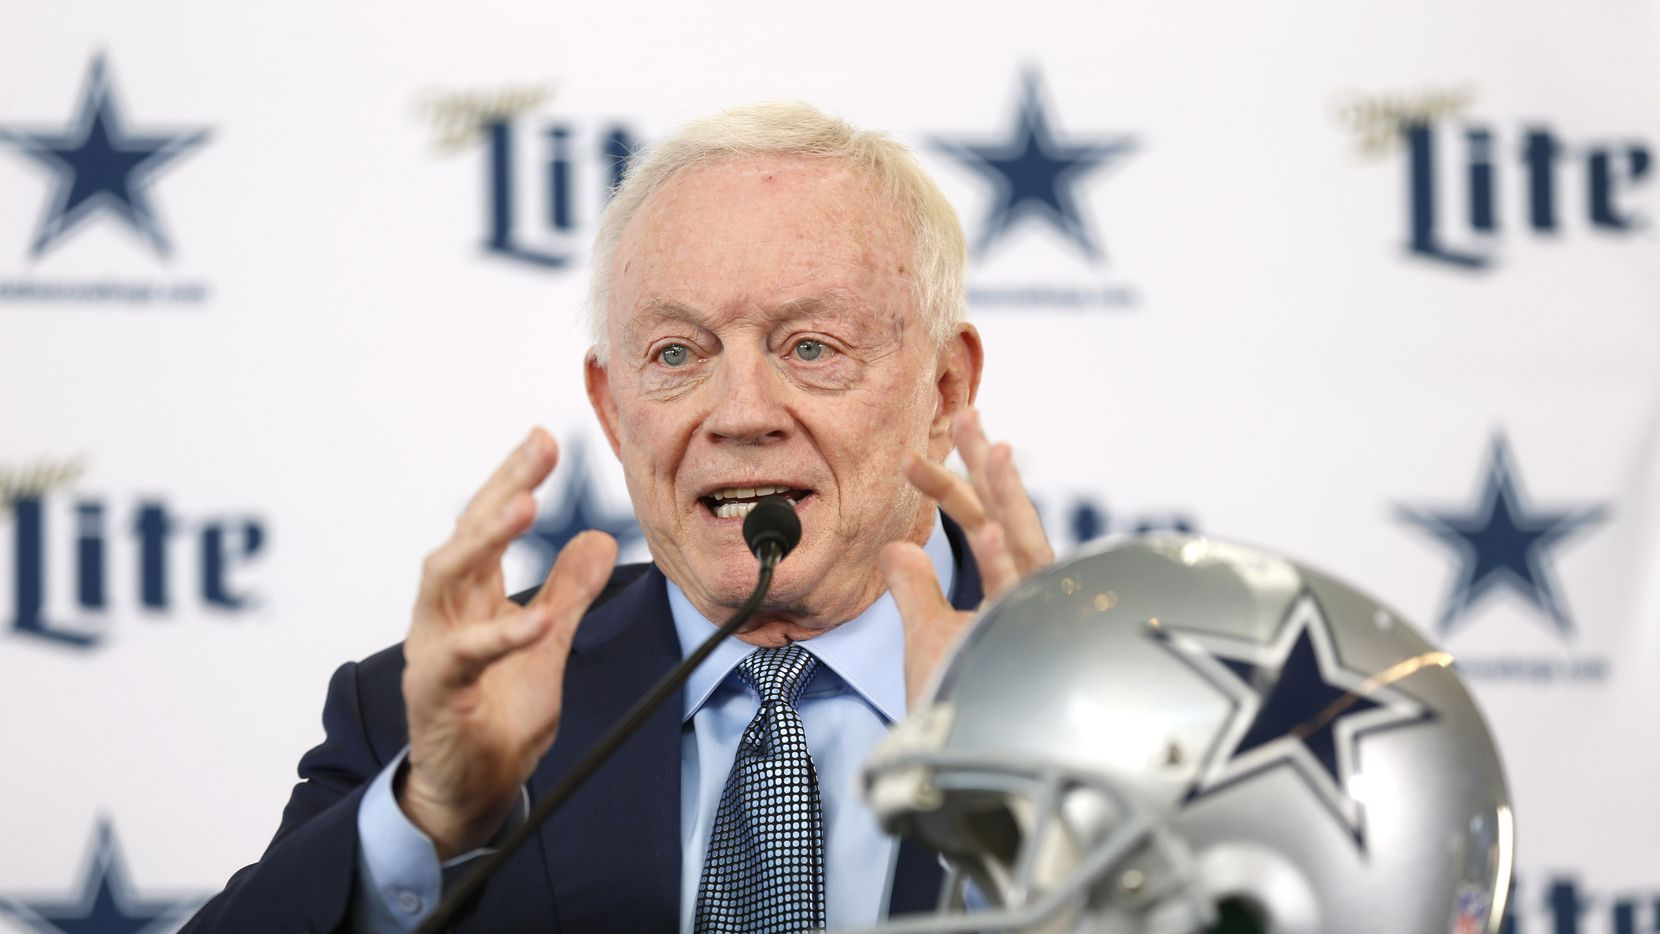 FILE - Cowboys owner Jerry Jones speaks during a press conference to announce new head coach Mike McCarthy in the Ford Center at The Star in Frisco on Wednesday, Jan. 8, 2020.